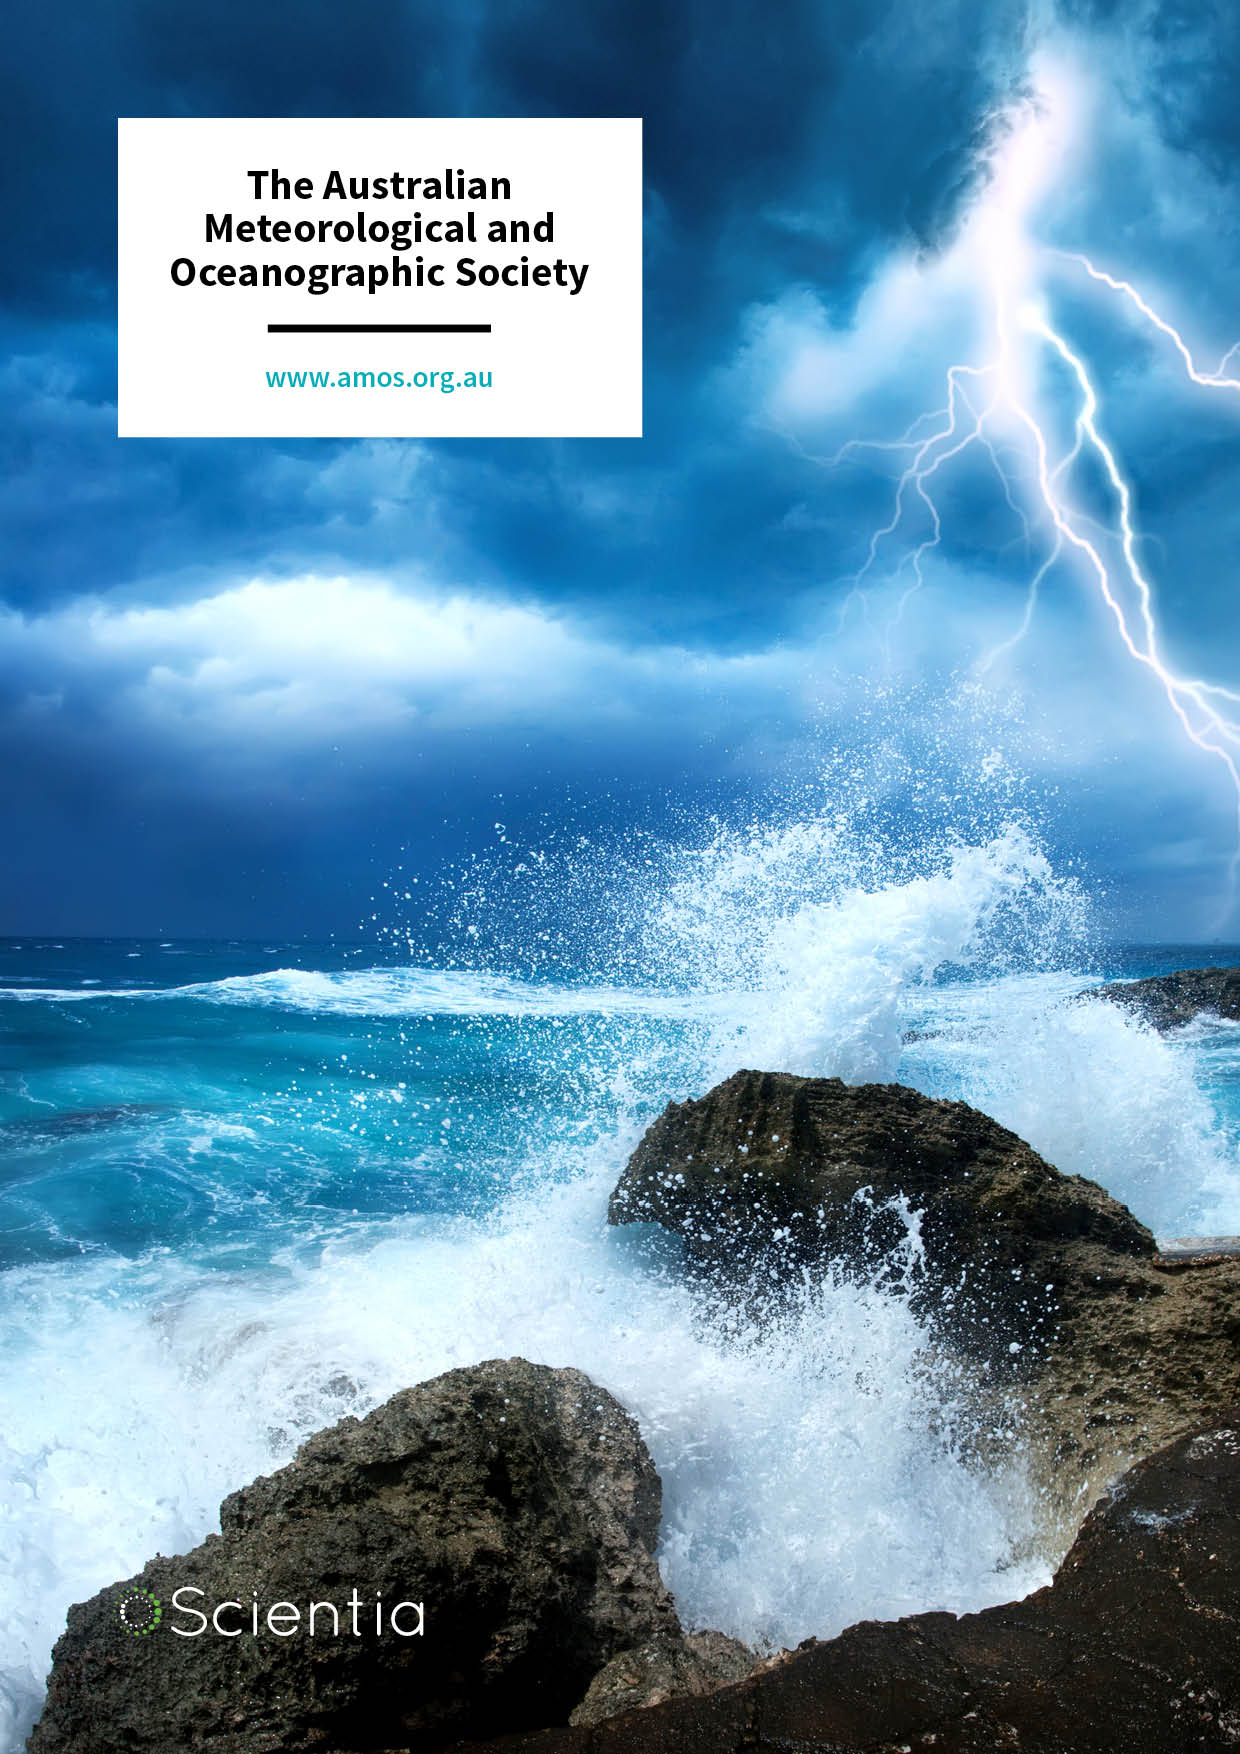 The Australian Meteorological and Oceanographic Society